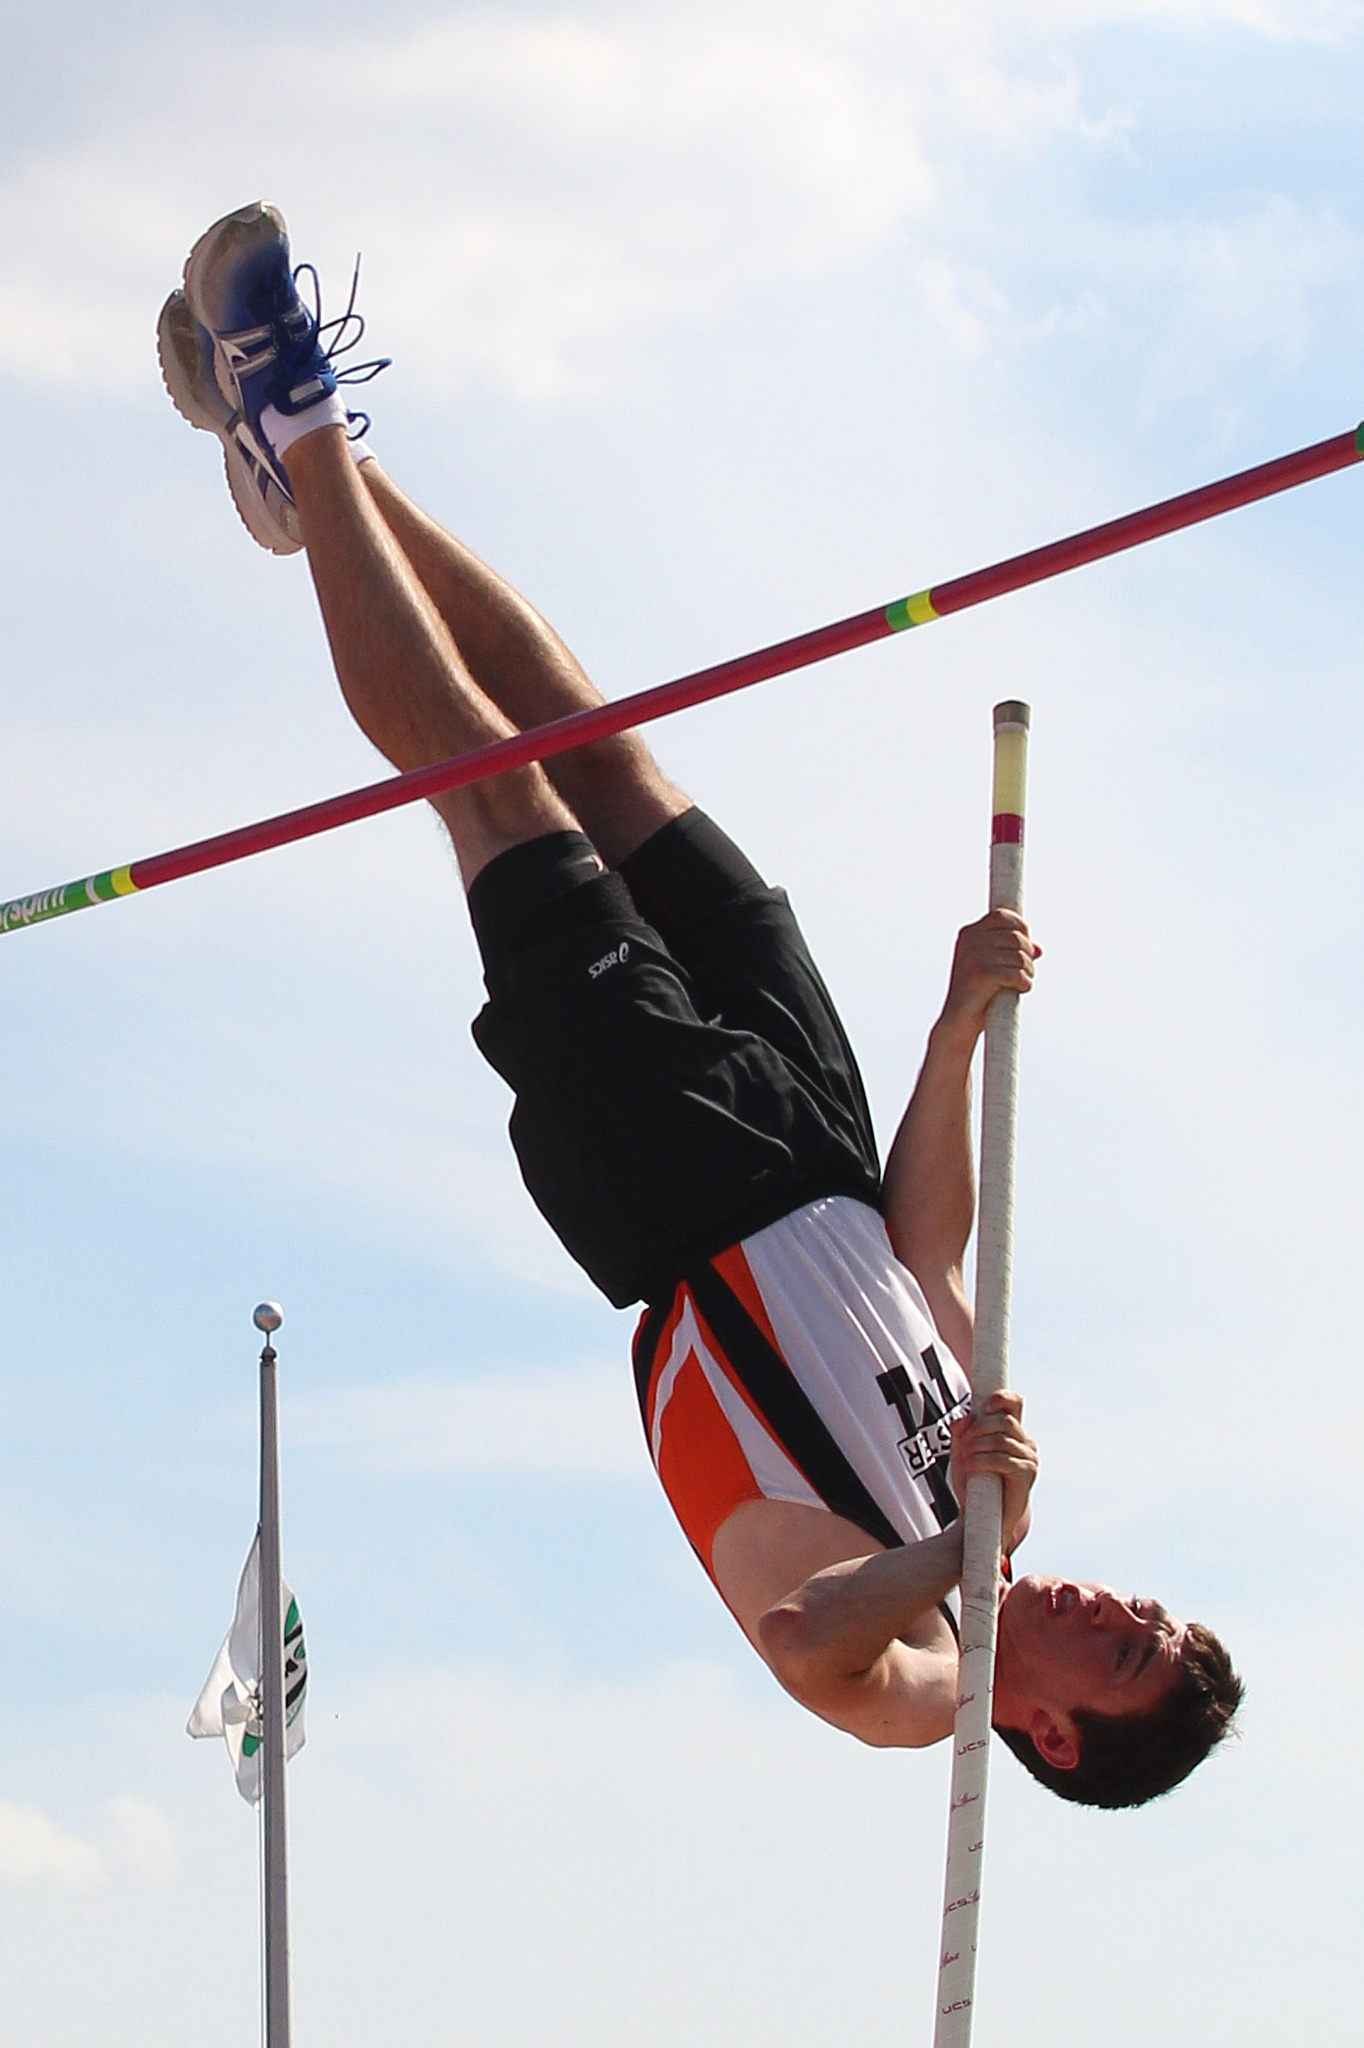 Vaulting by dboquist